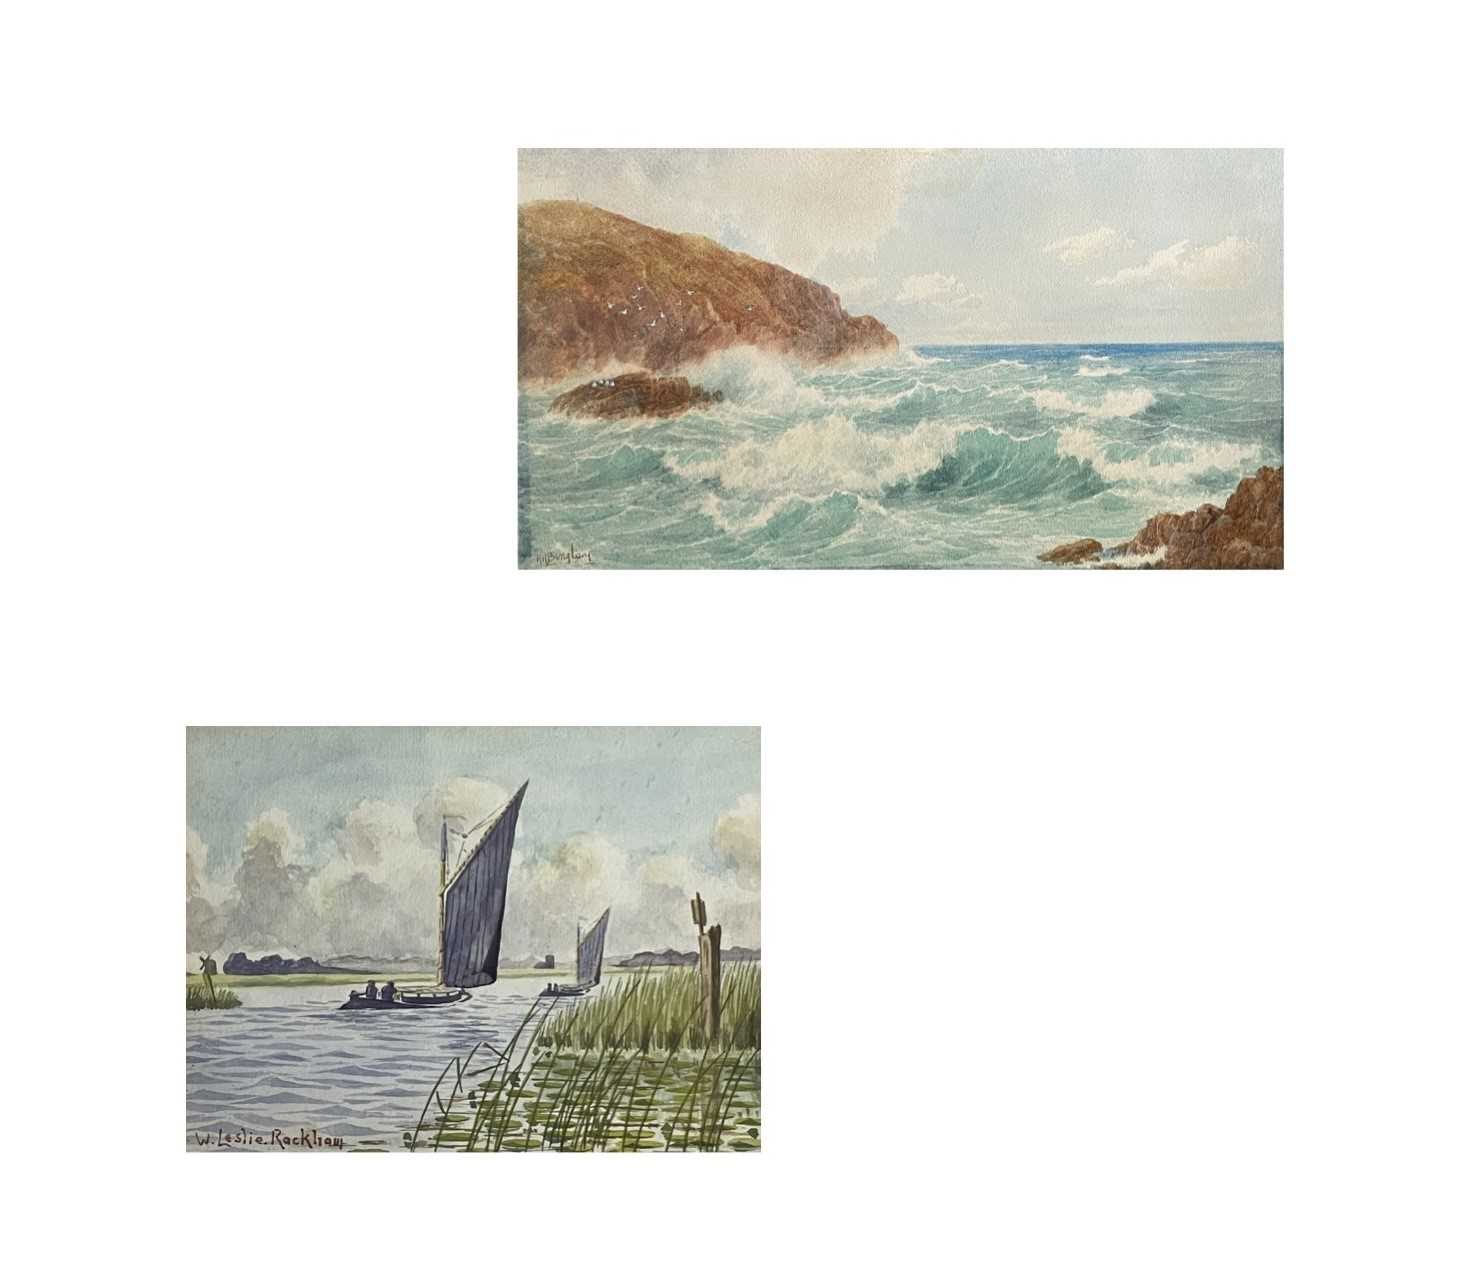 William Leslie RACKHAM (1864-1944)Sailing on the BroadsWatercolour Signed 15 x 20cmTogether with